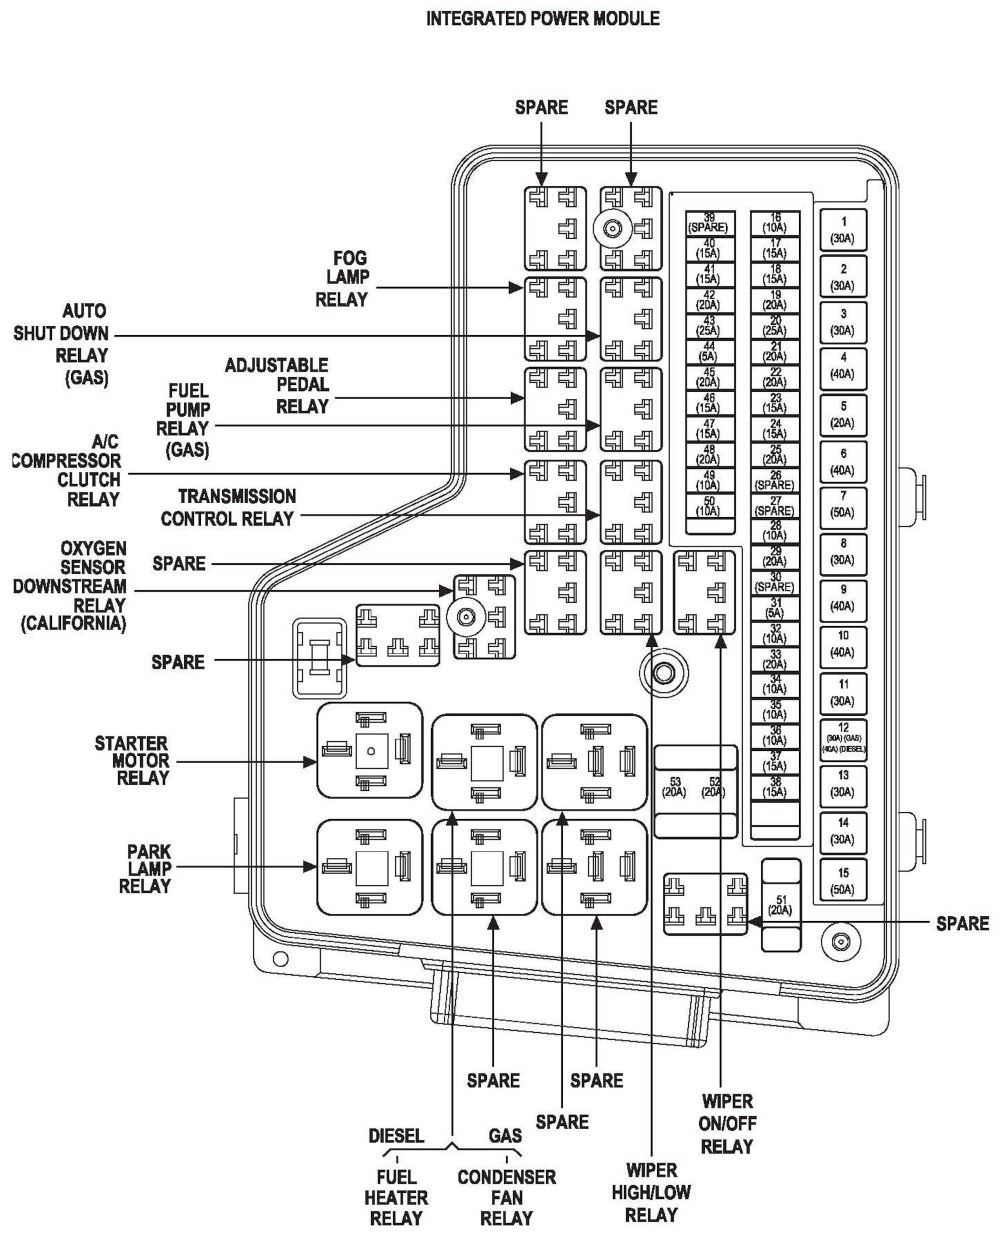 medium resolution of 02 dodge ram fuse box wiring diagram 2006 dodge ram 1500 fuse panel diagram dodge ram 1500 fuse panel diagram